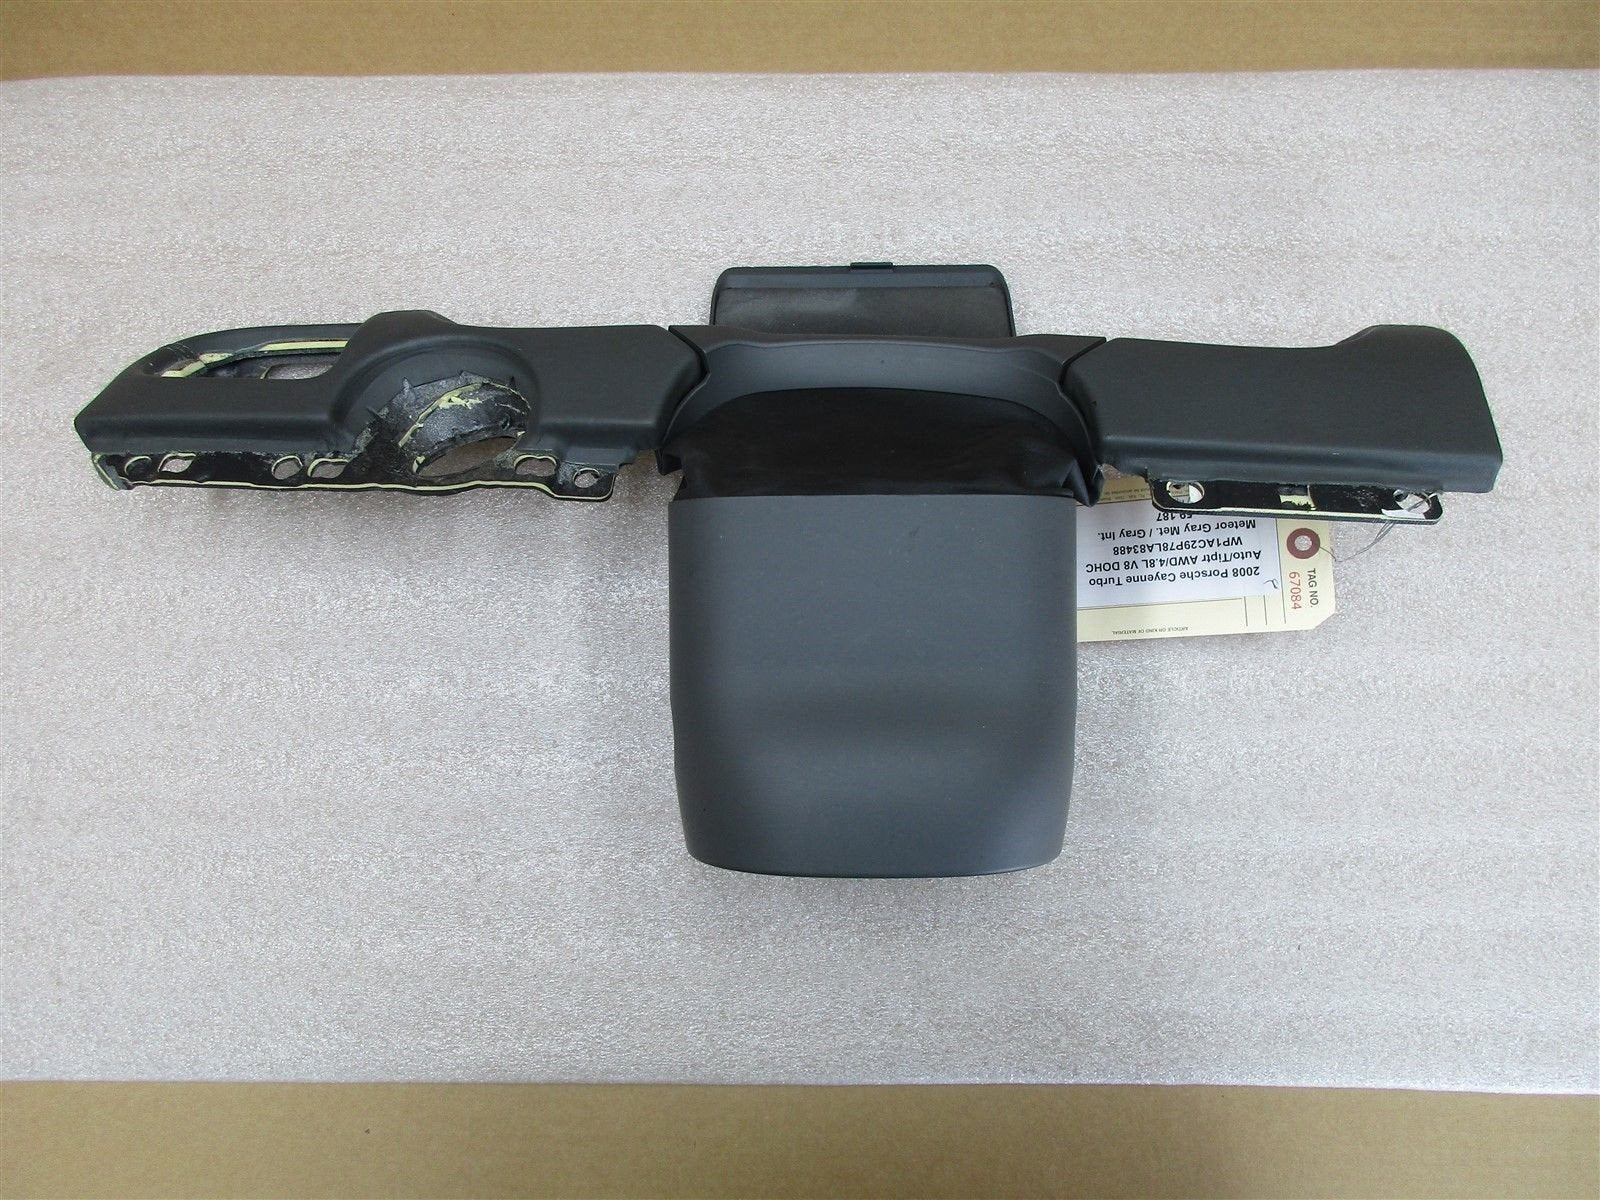 08 Cayenne Turbo AWD Porsche 957 STEERING COLUMN COWL TRIM 7L5953516C 59,187